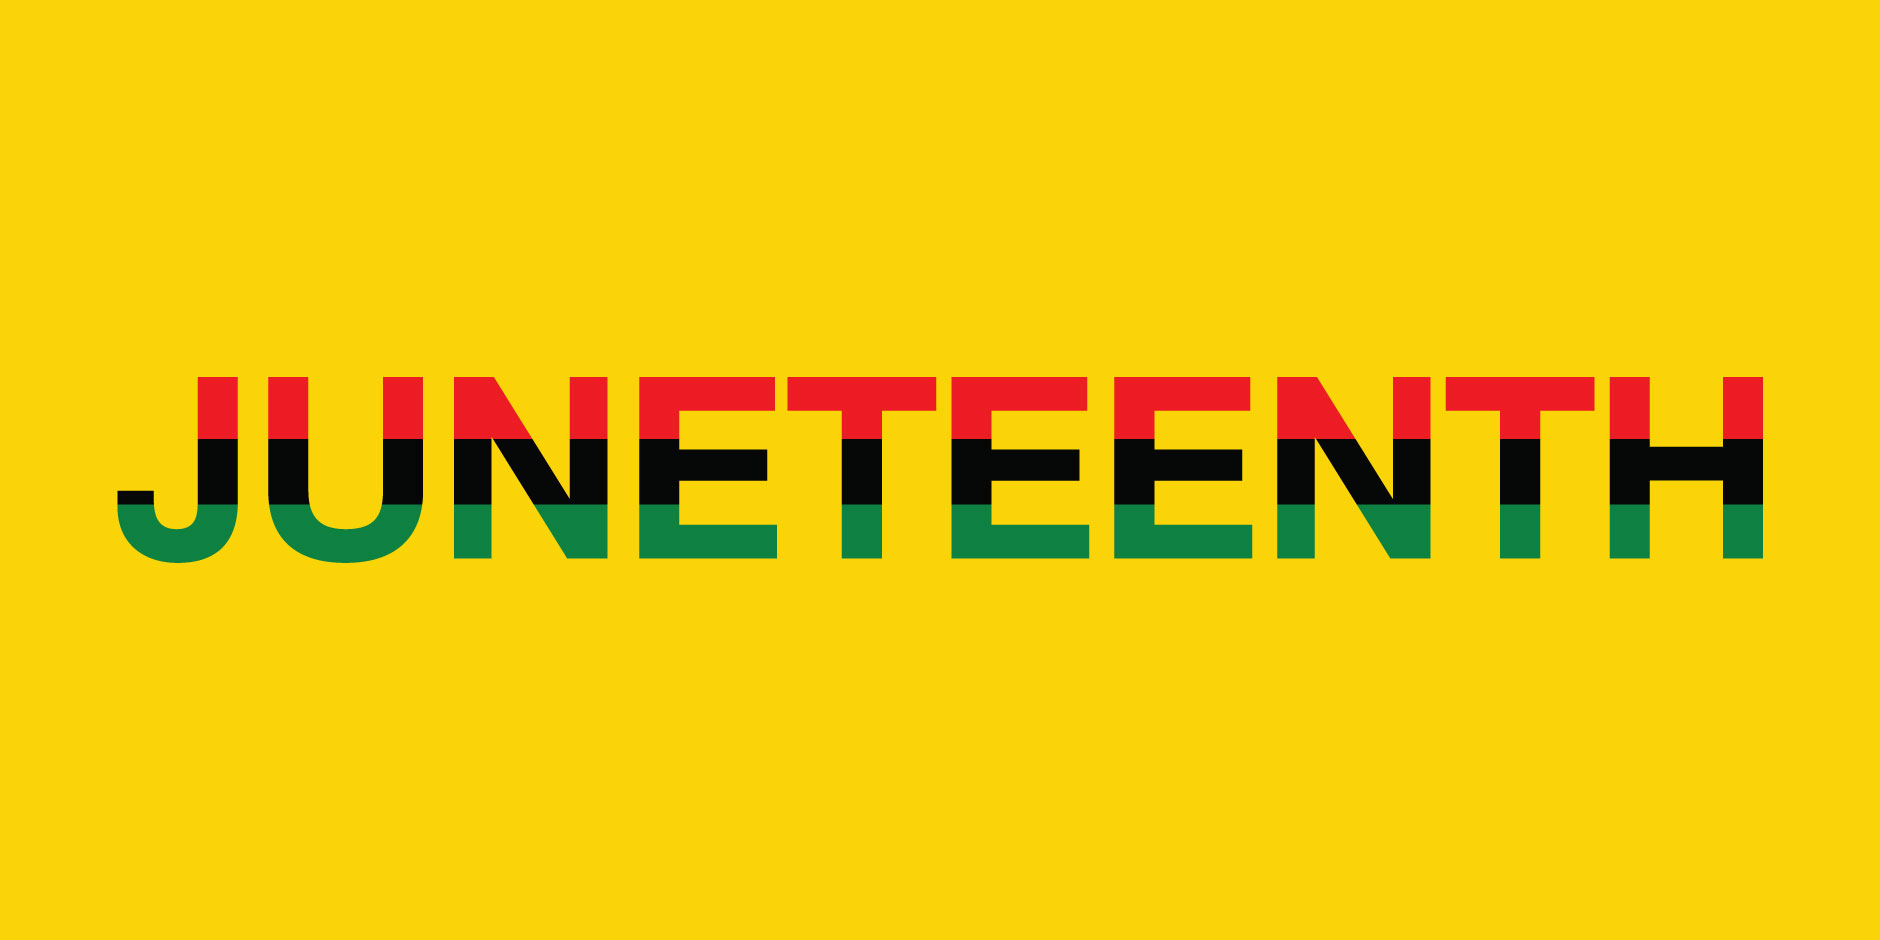 The word Juneteenth appears in red, black and green against a yellow background